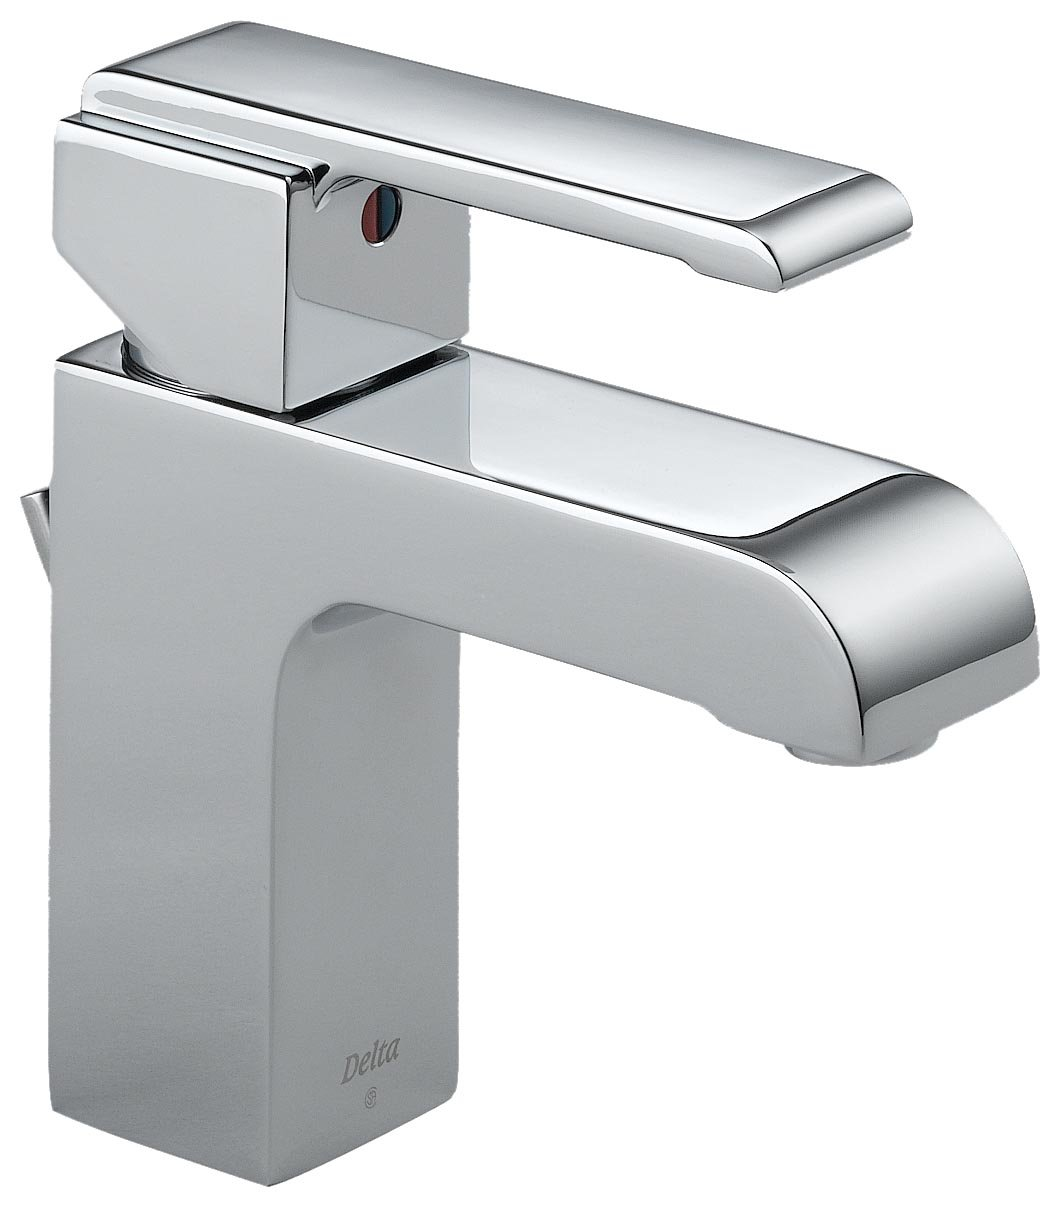 Delta 586LF MPU Arzo Single Handle Centerset Bathroom Faucet, Chrome    Touch On Bathroom Sink Faucets   Amazon.com